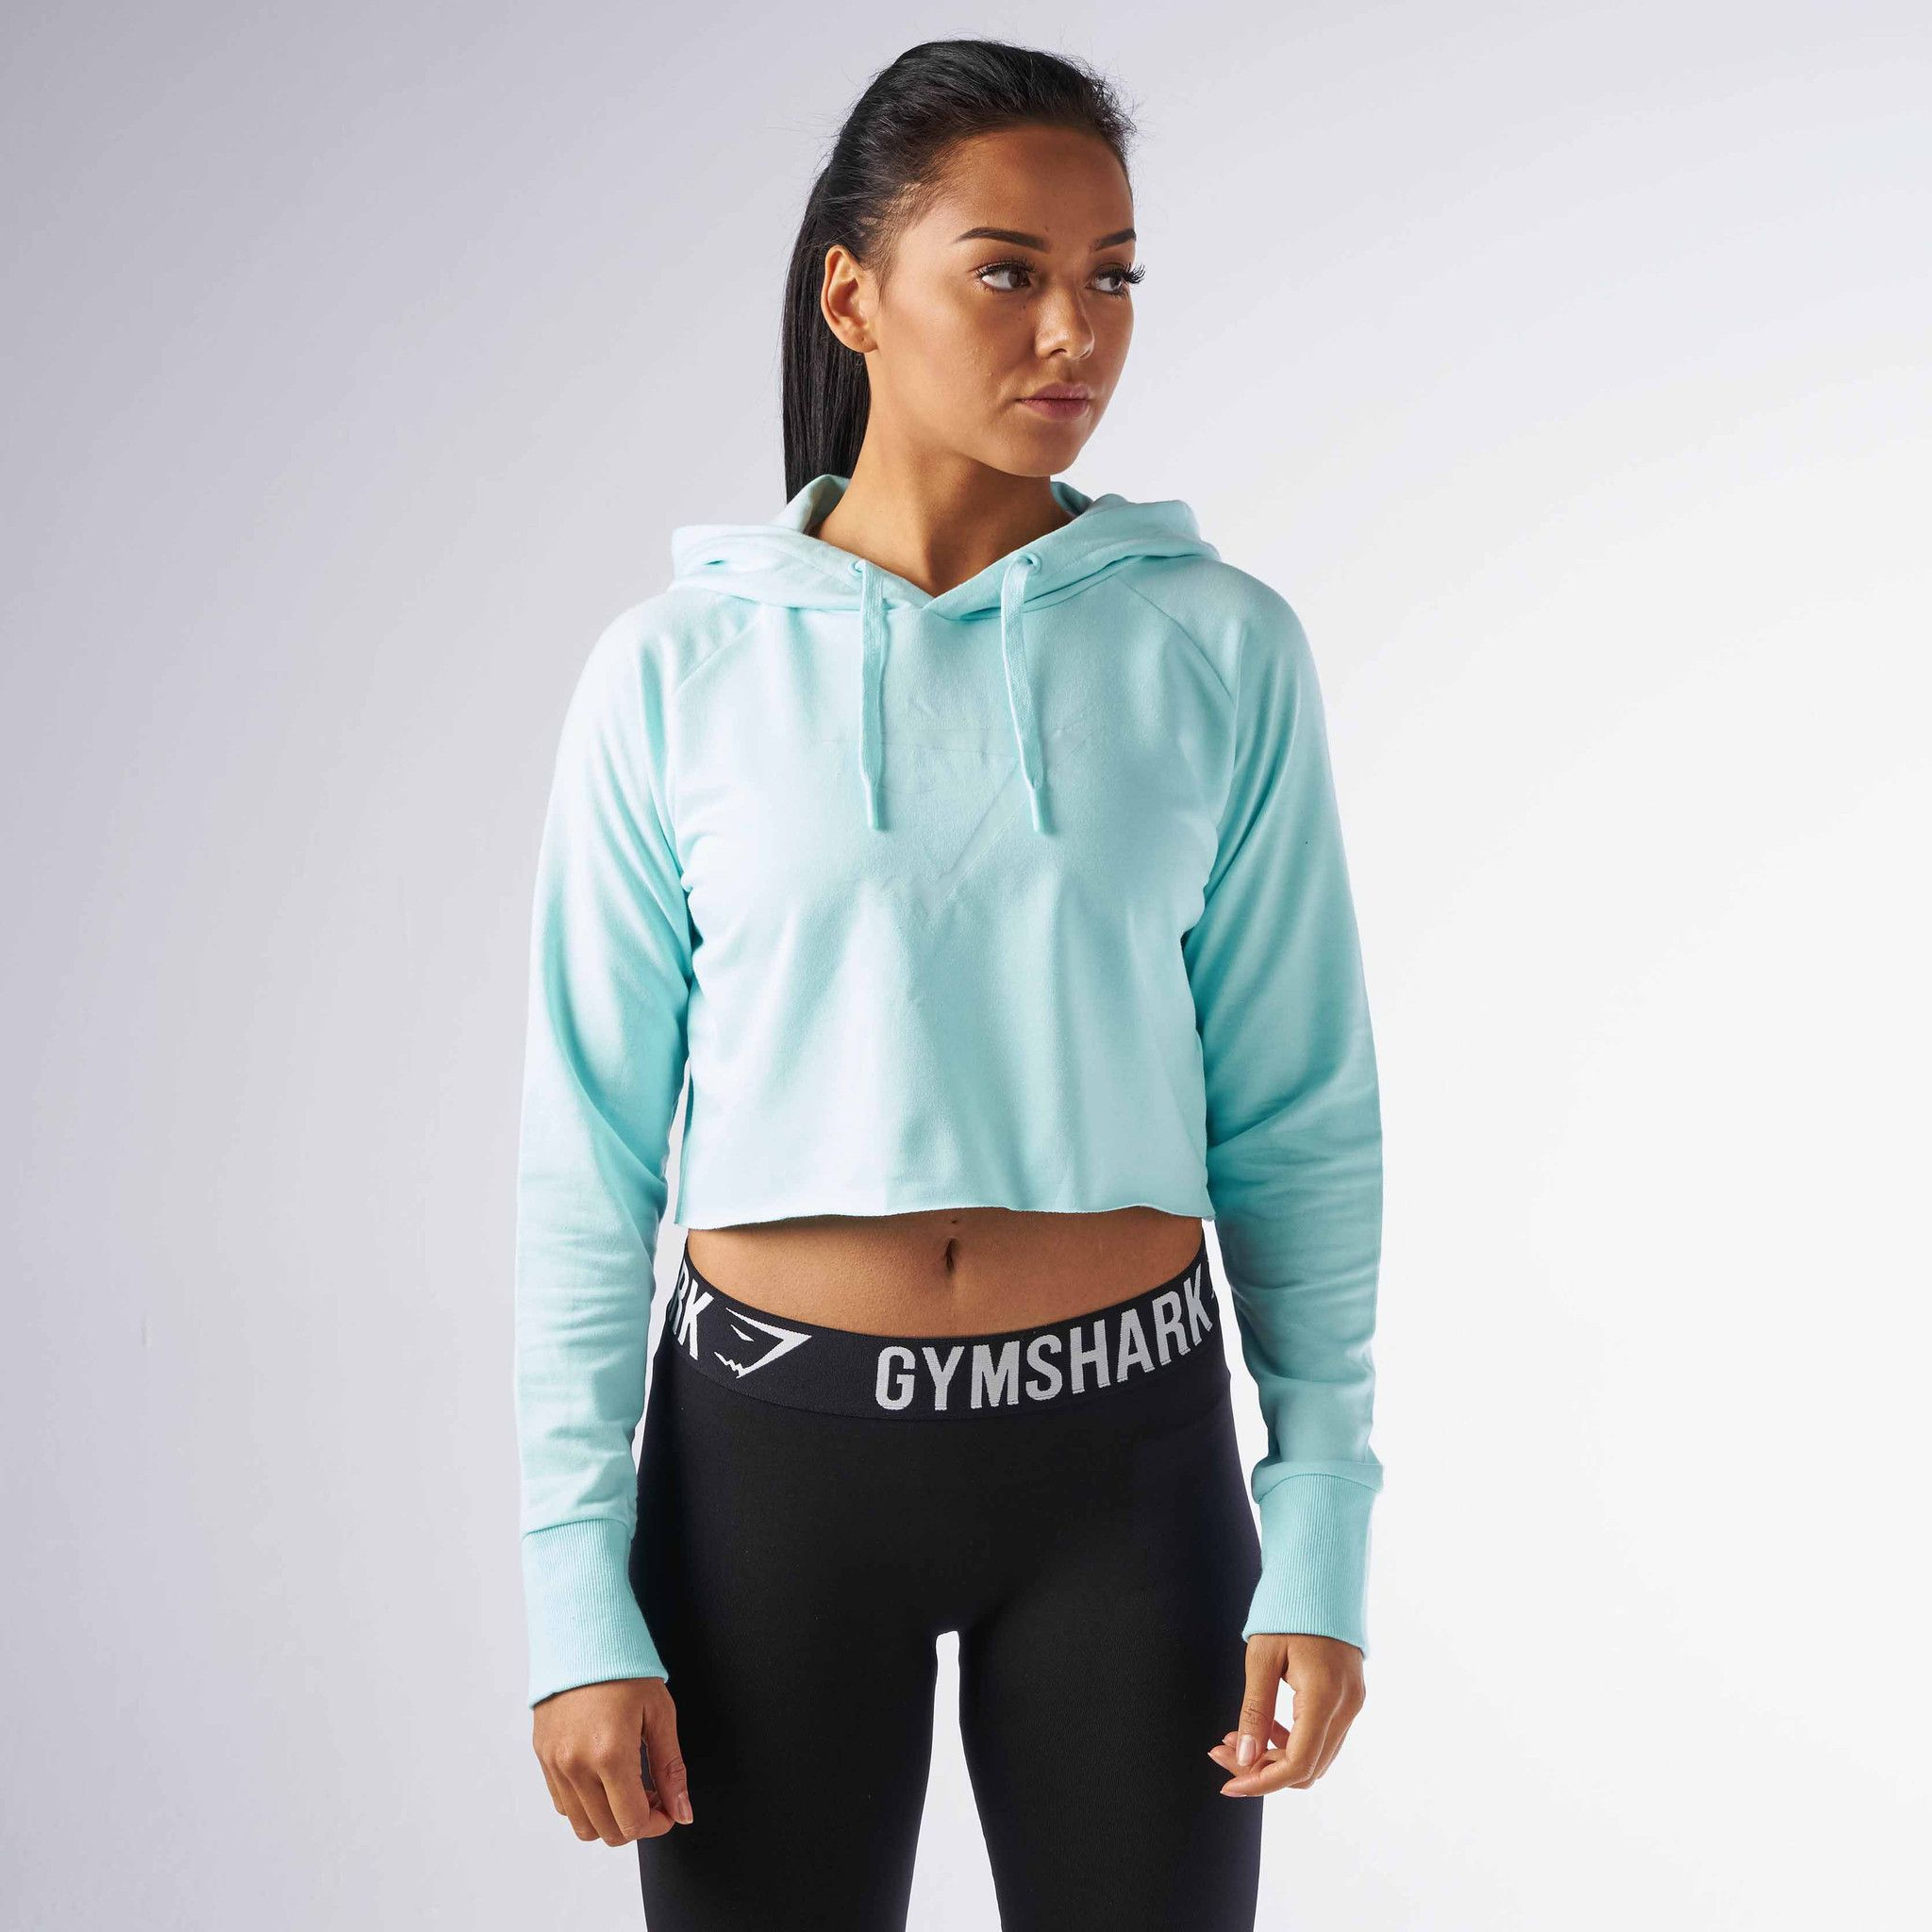 Gymshark Cropped Hoodie - Pale Turquoise